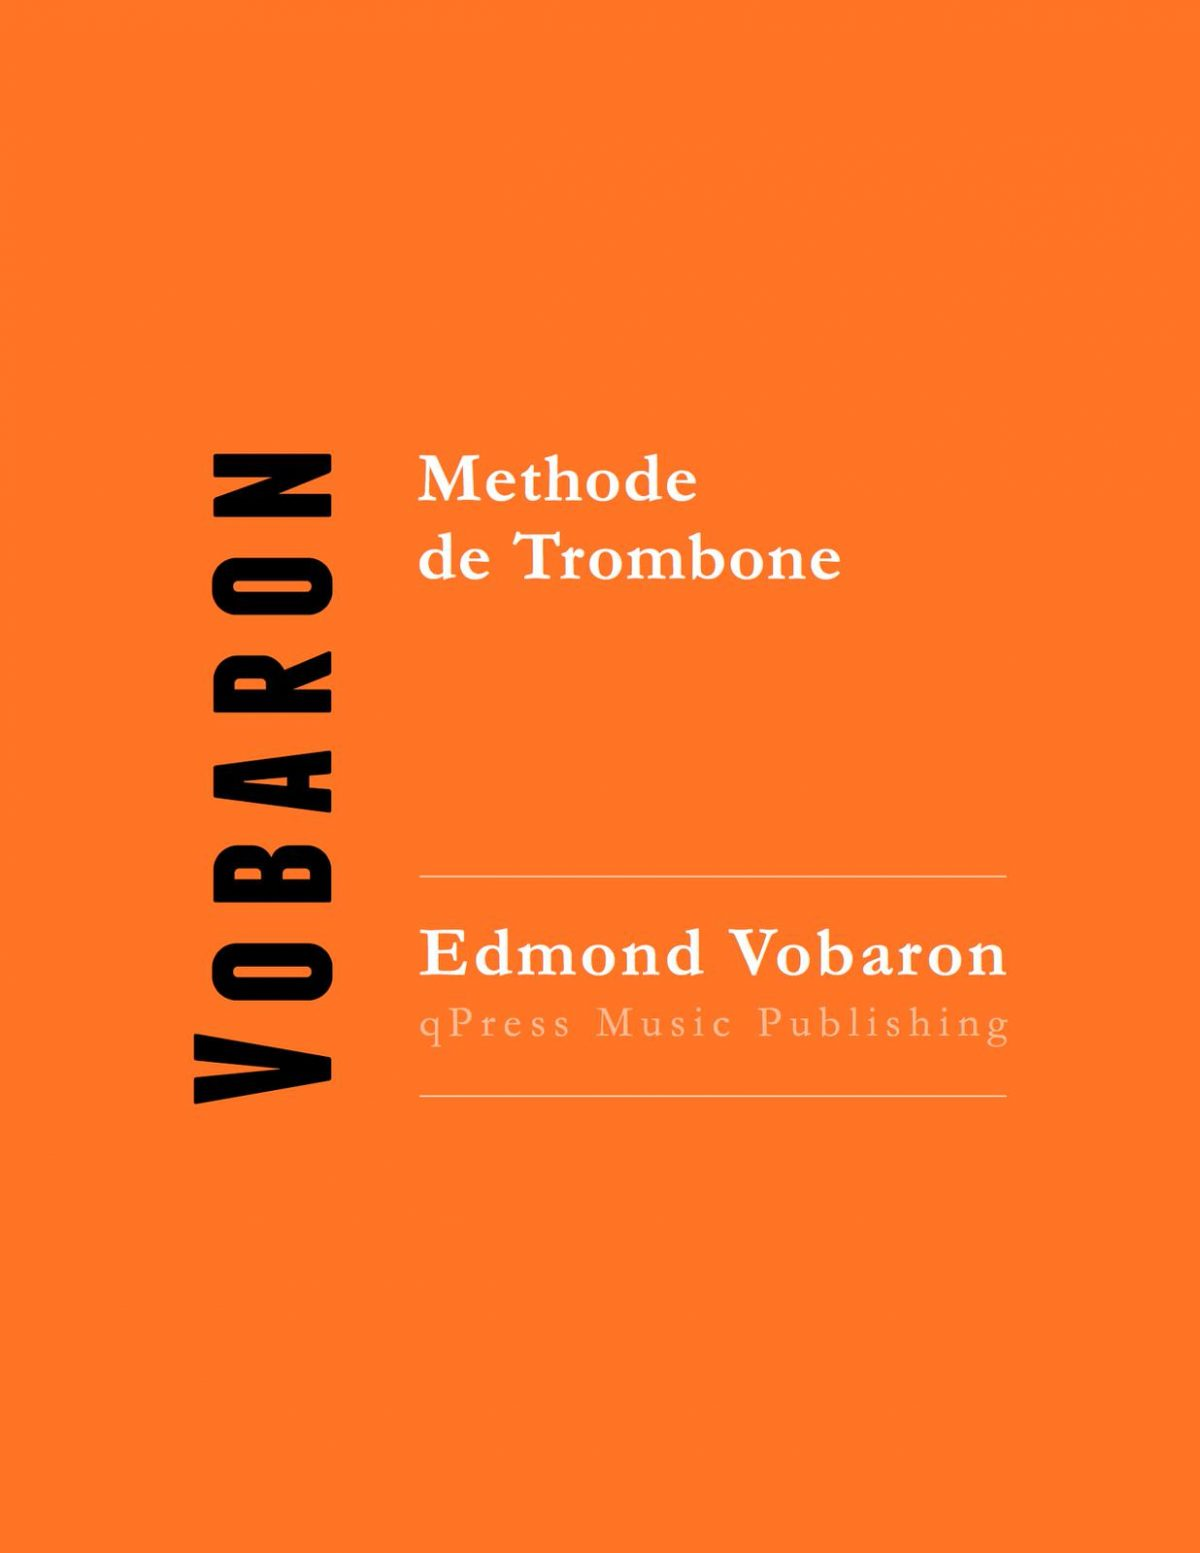 Vobaron, Edmond, Methode de Trombone